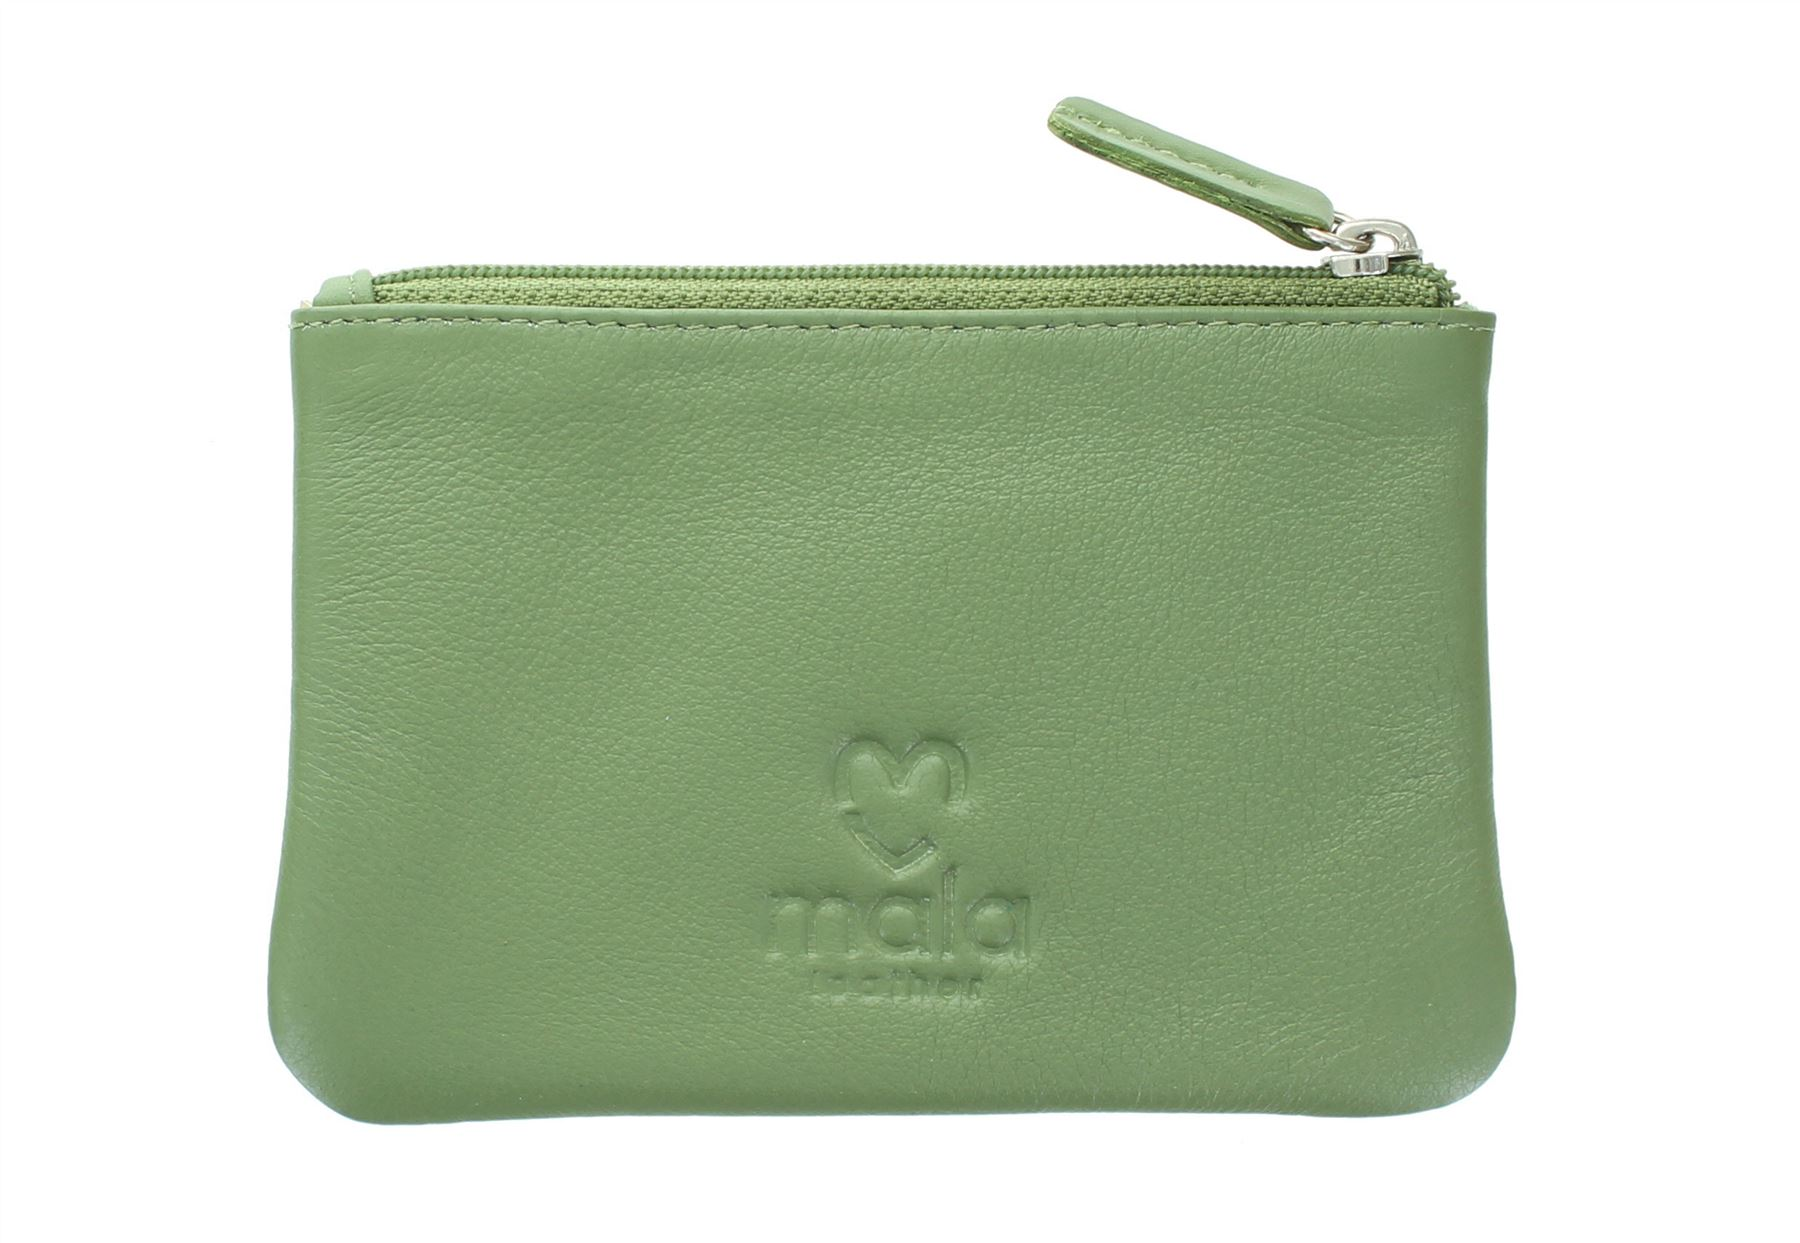 MALA LEATHER APPLIQUE AND PRINTED QUALITY LEATHER COIN PURSES 4115/_11